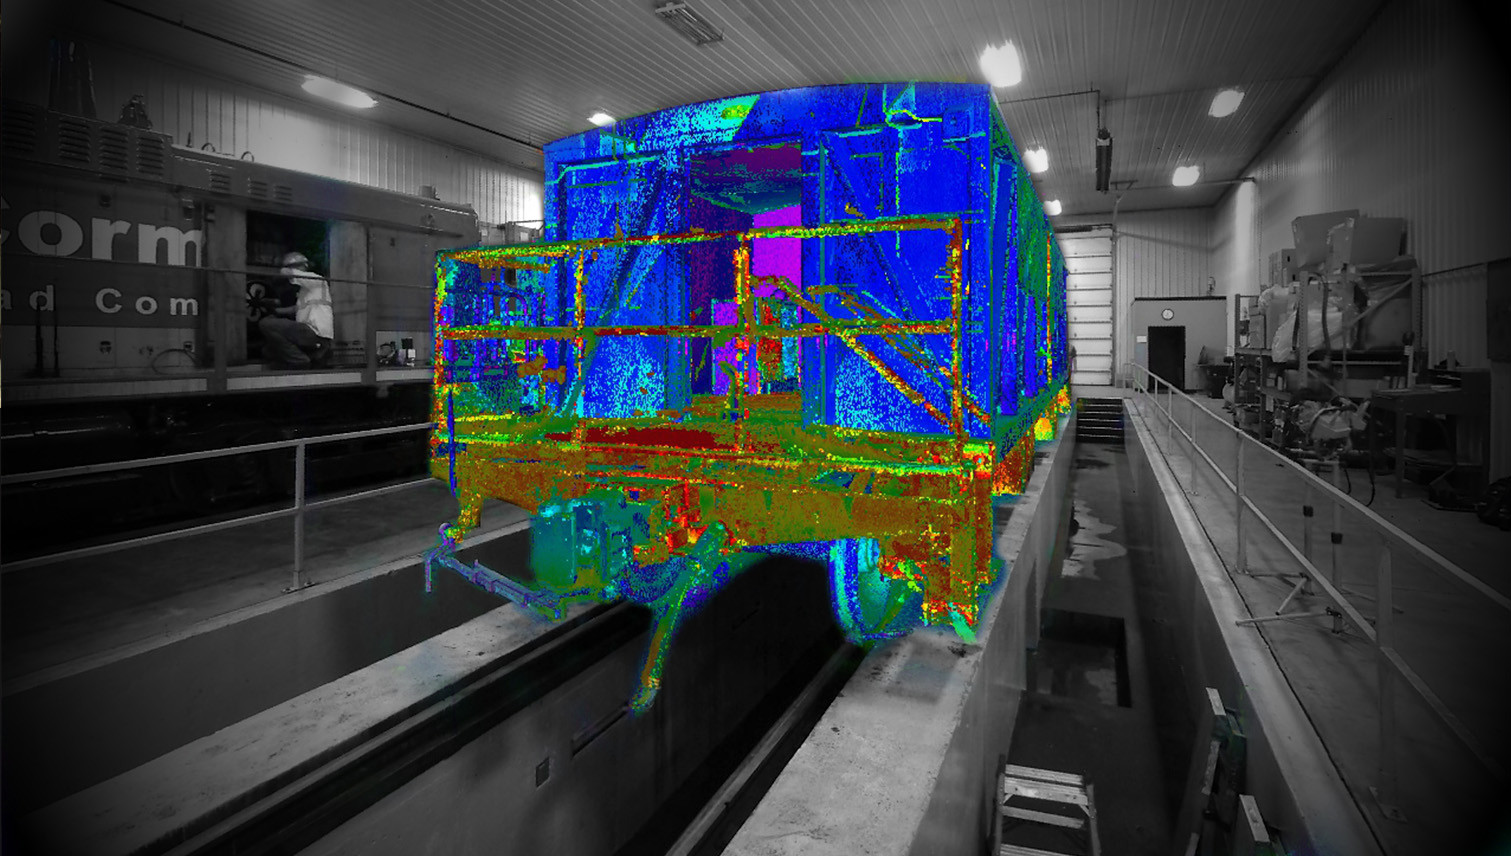 3D POINT CLOUD RAILCAR OVERLAY-PMC has done many unique laser scanning projects. Shown here is an example of a rail car 3D modeled using point cloud data. The scan is a source for railroad issues such as, to scrap or not to scrap, inspection, maintenance, repair, modification, refurbish and retrofitting, and industry changes and regulations.